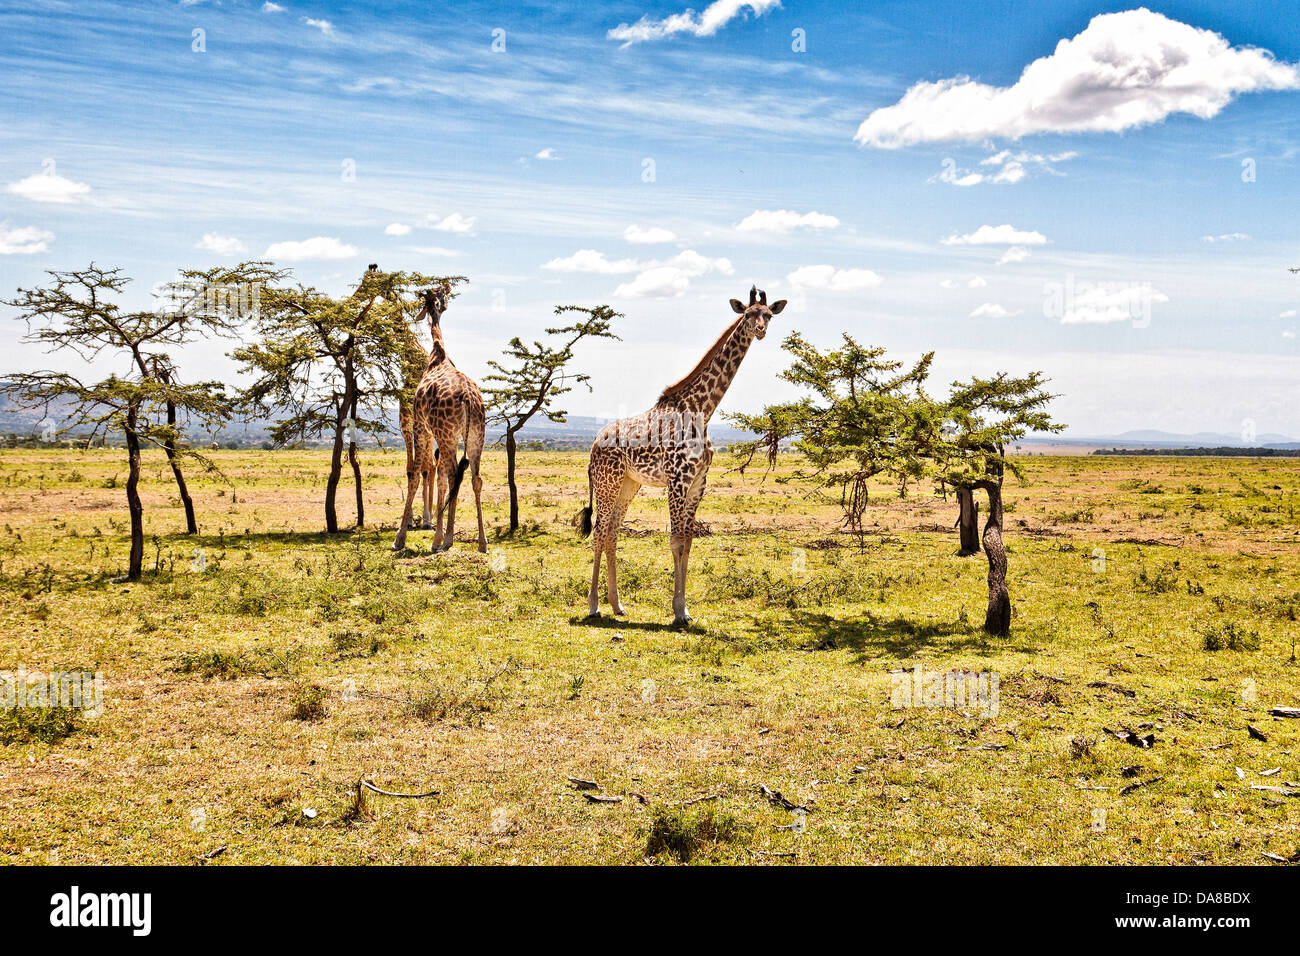 Giraffes Browsing from their favorite trees in the Masai Mara, Kenya - Stock Image